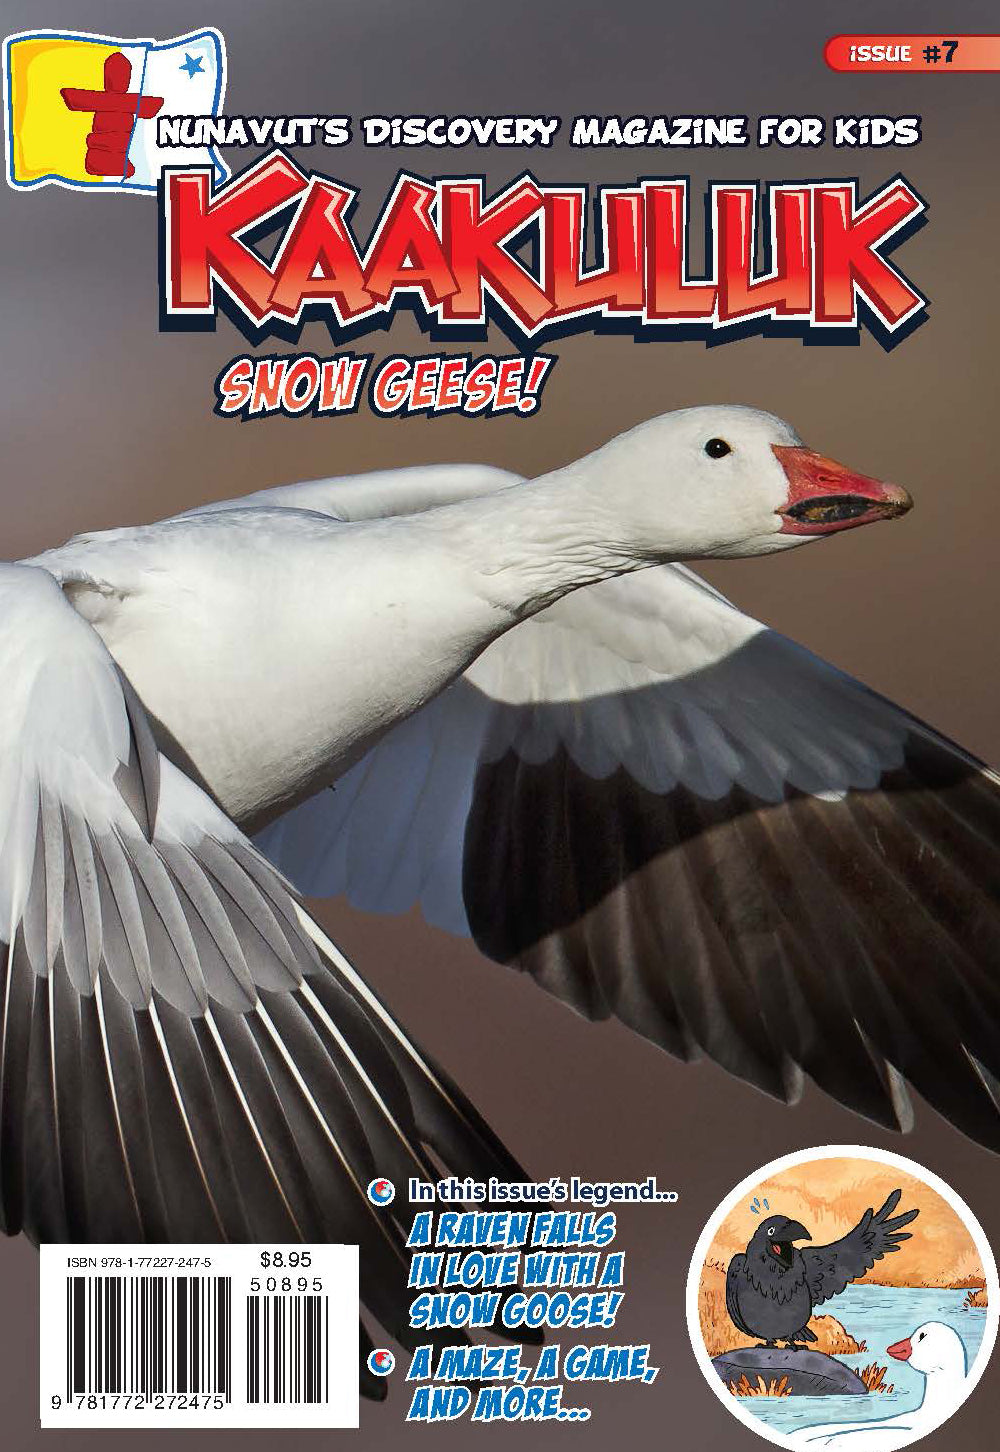 Kaakuluk: Nunavut's Discovery Magazine for Kids Issue #7